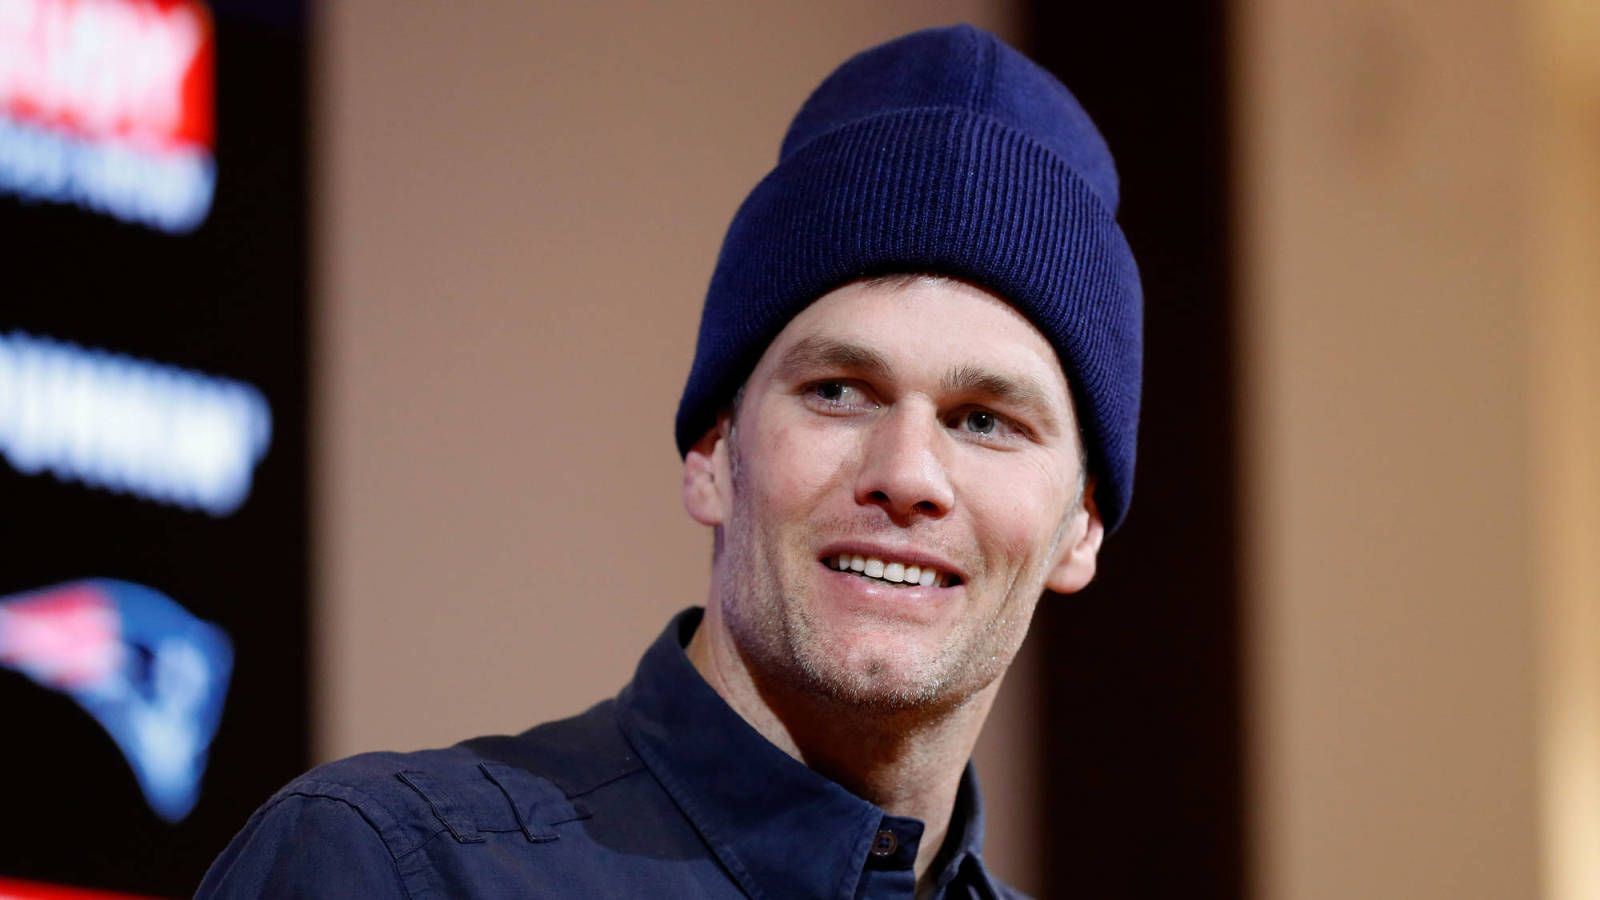 Patriots to meet with Brady's agent this week to begin negotiations